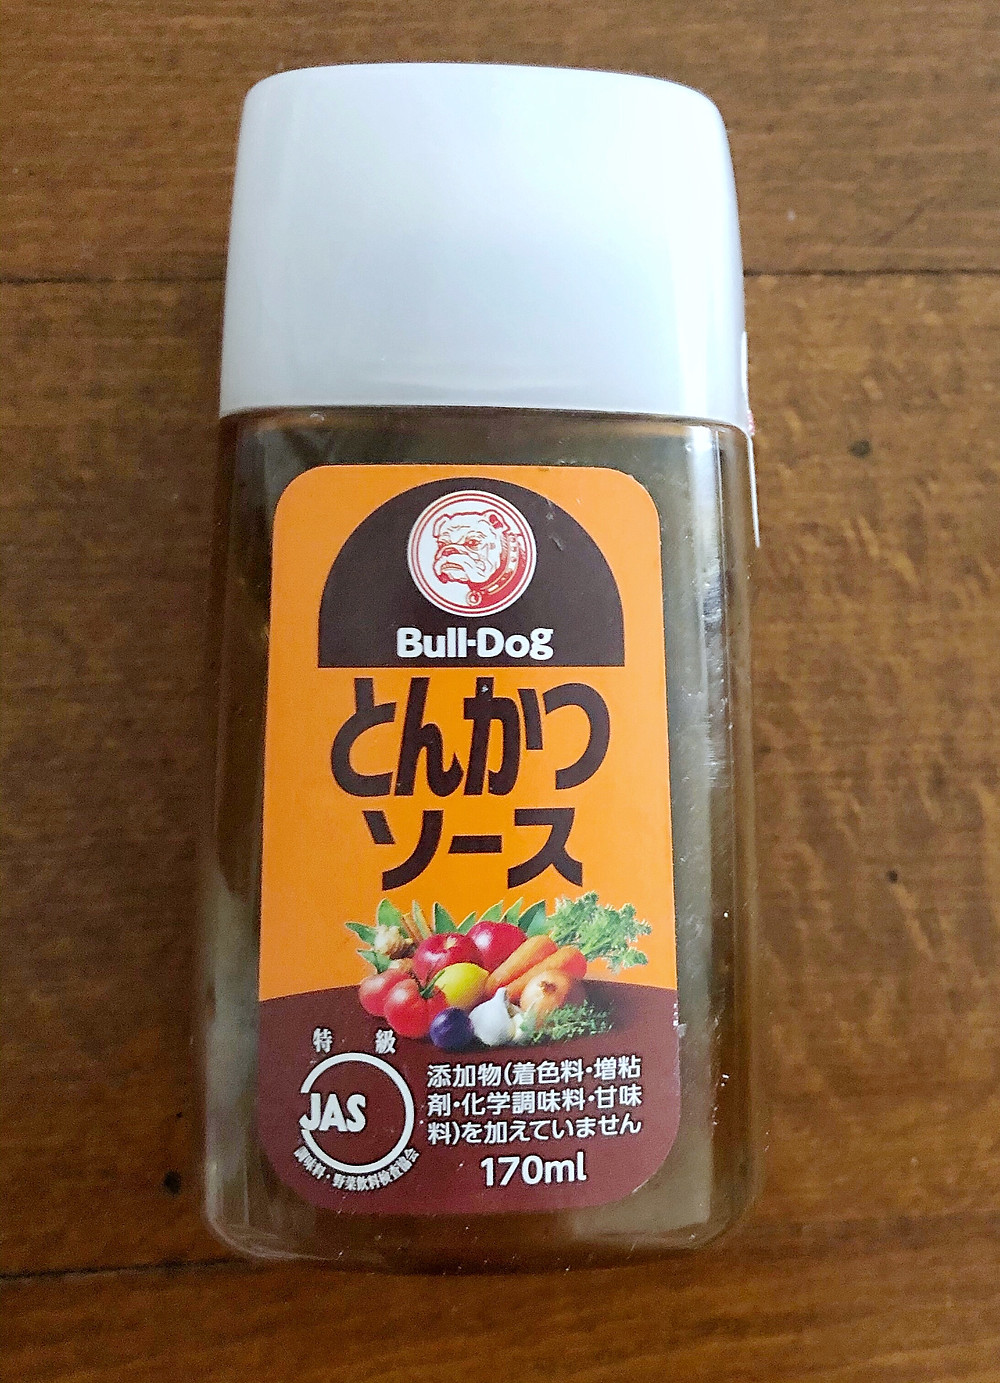 Tonkatsu sauce ricetta giappone Cookingwiththehamster